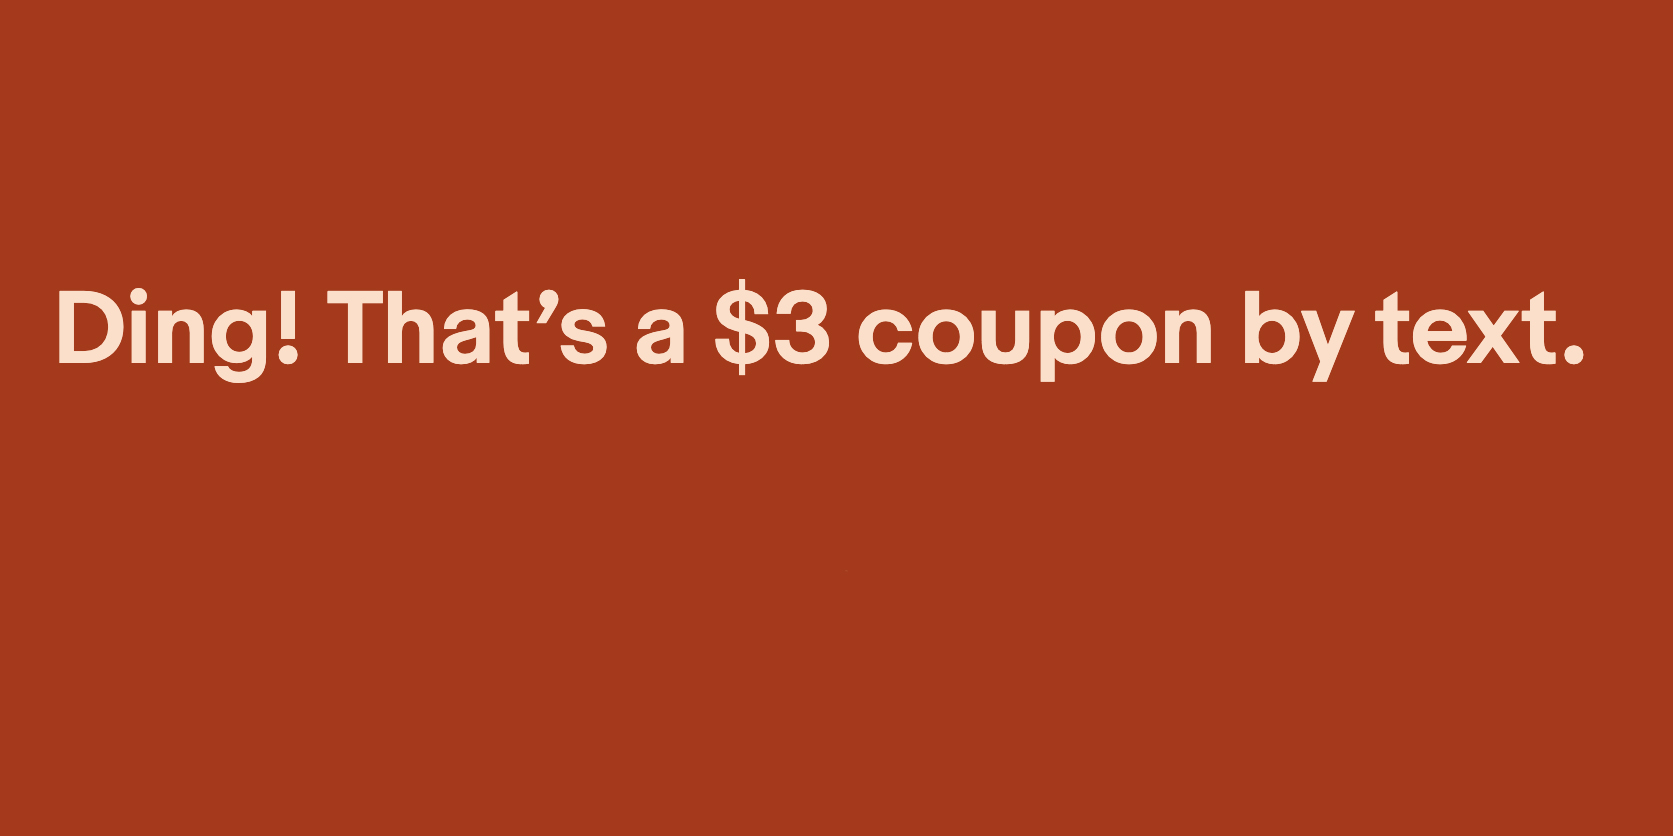 Ebay Offers 3 Off Your Next Order With One Simple Step 9to5toys